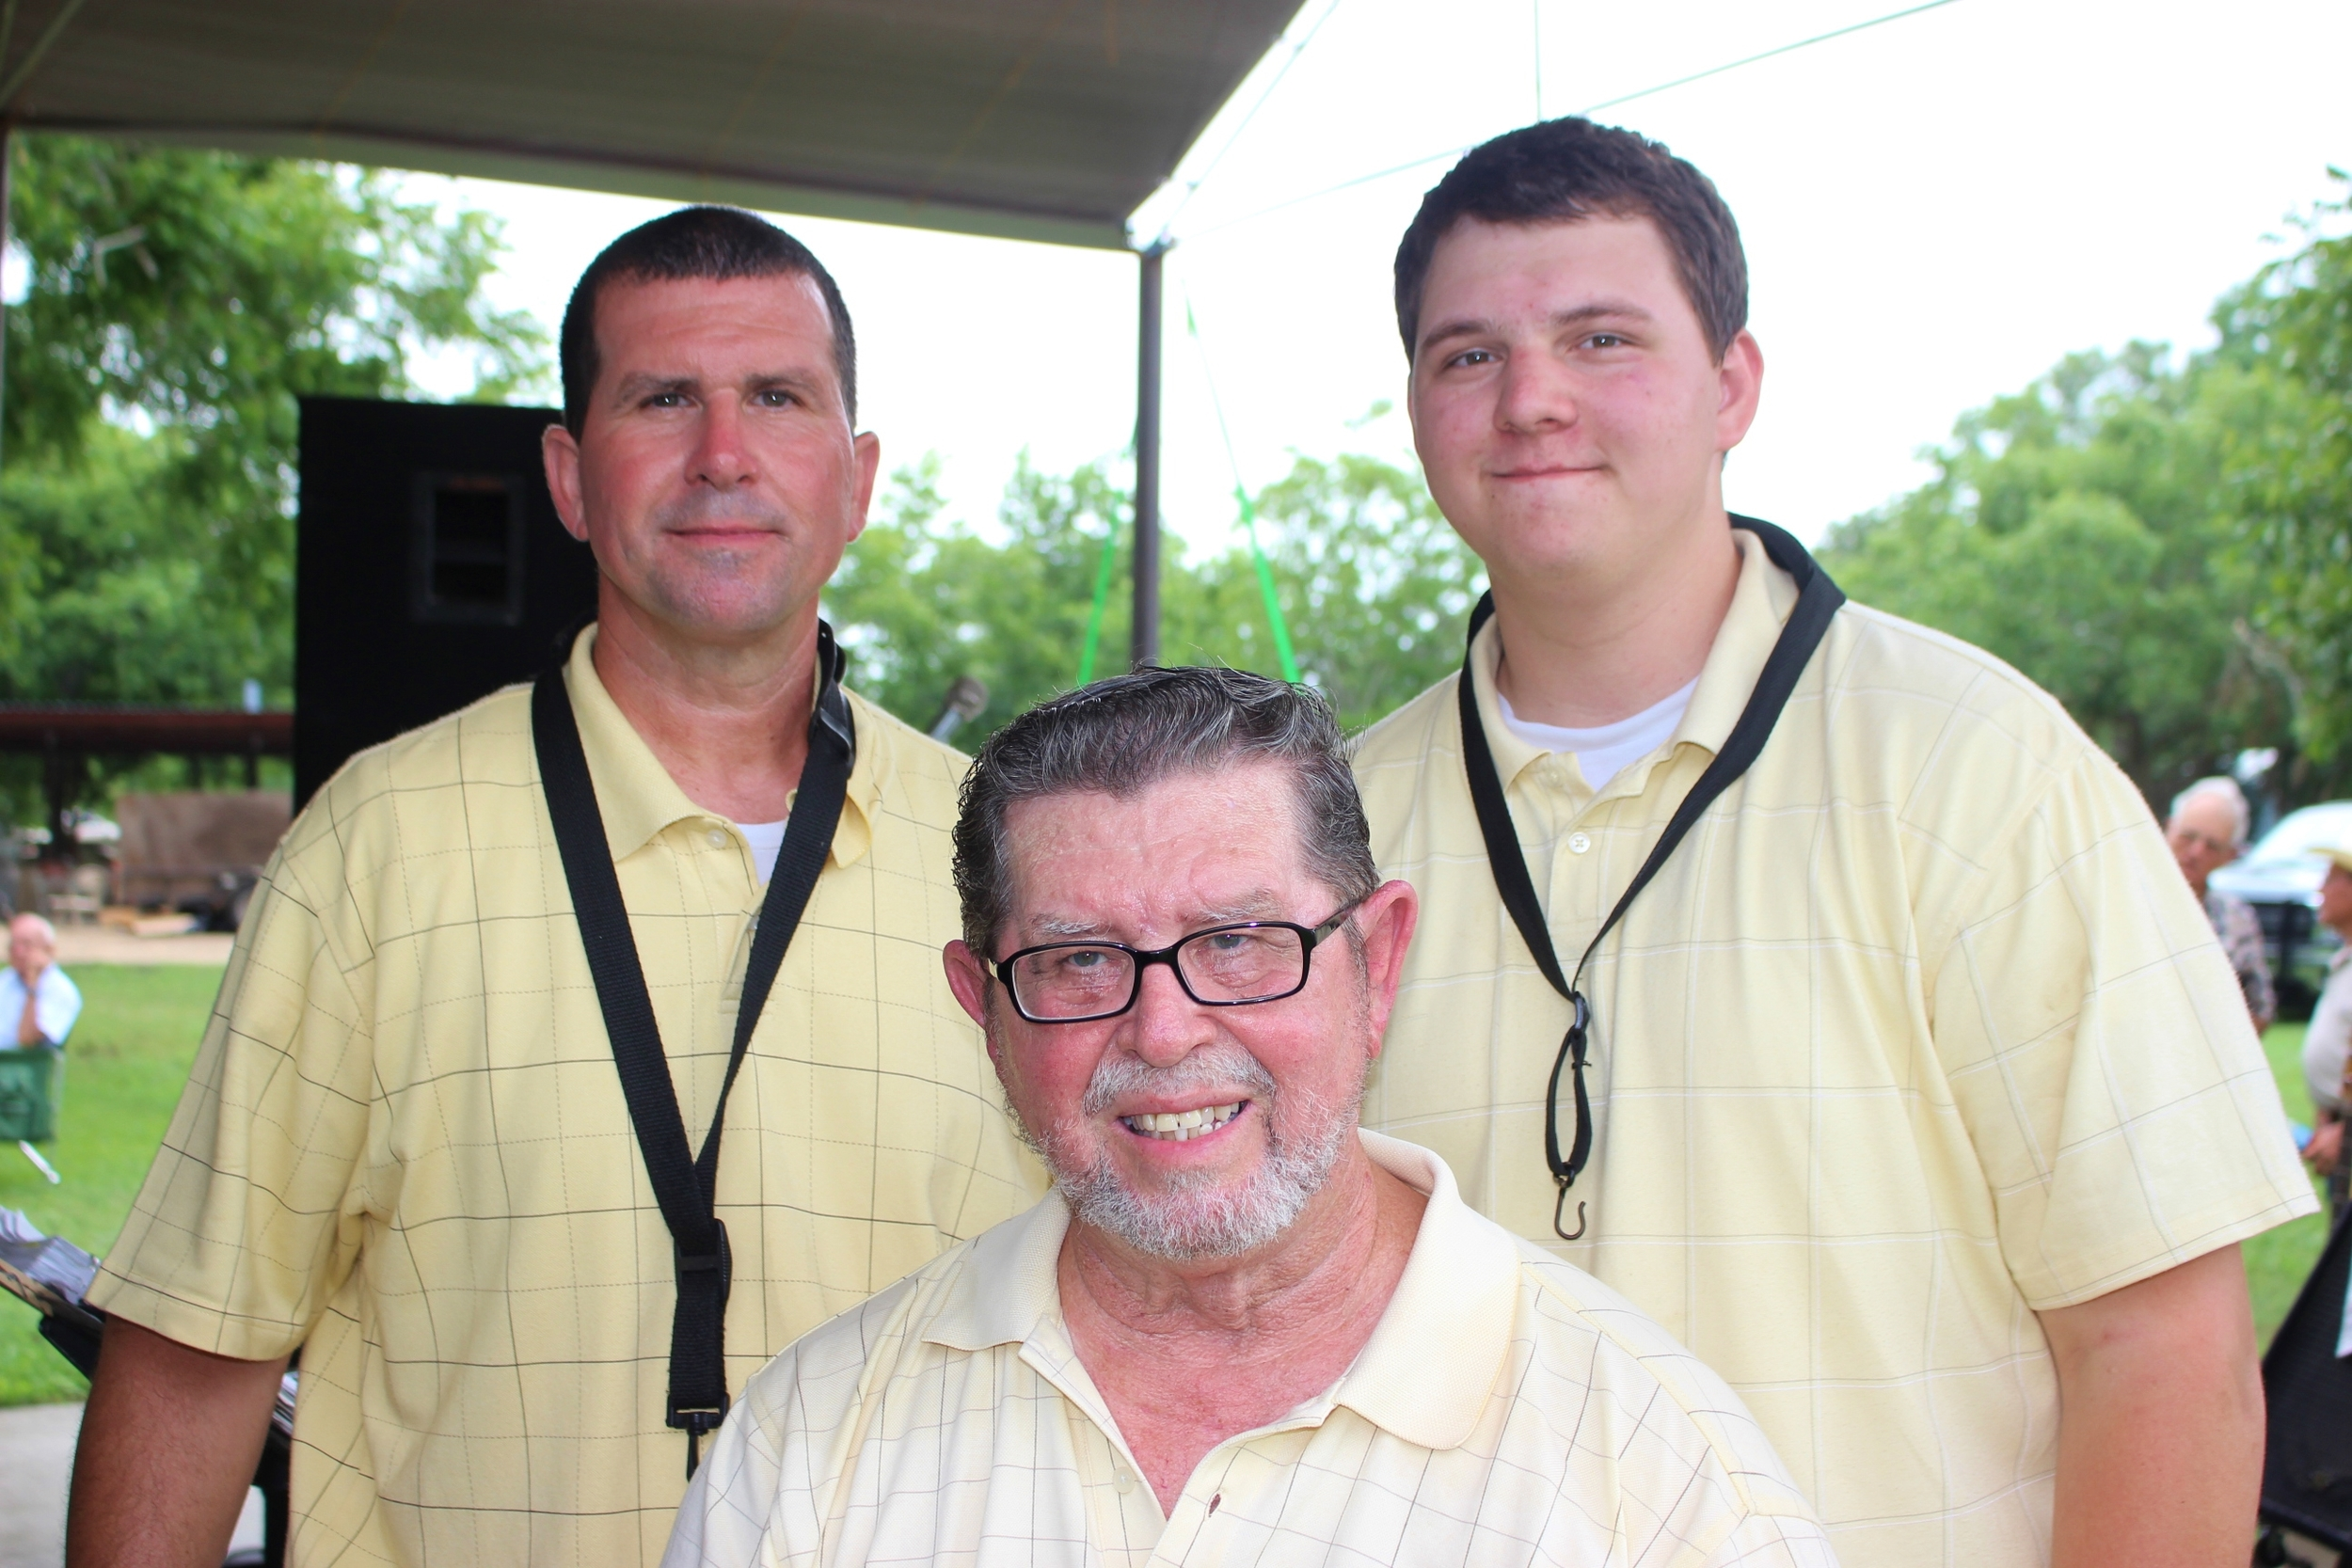 Scott, Brandon, and Fritz Hodde at the Ammansville Picnic on June 21, 2015./Gary E. McKee photo